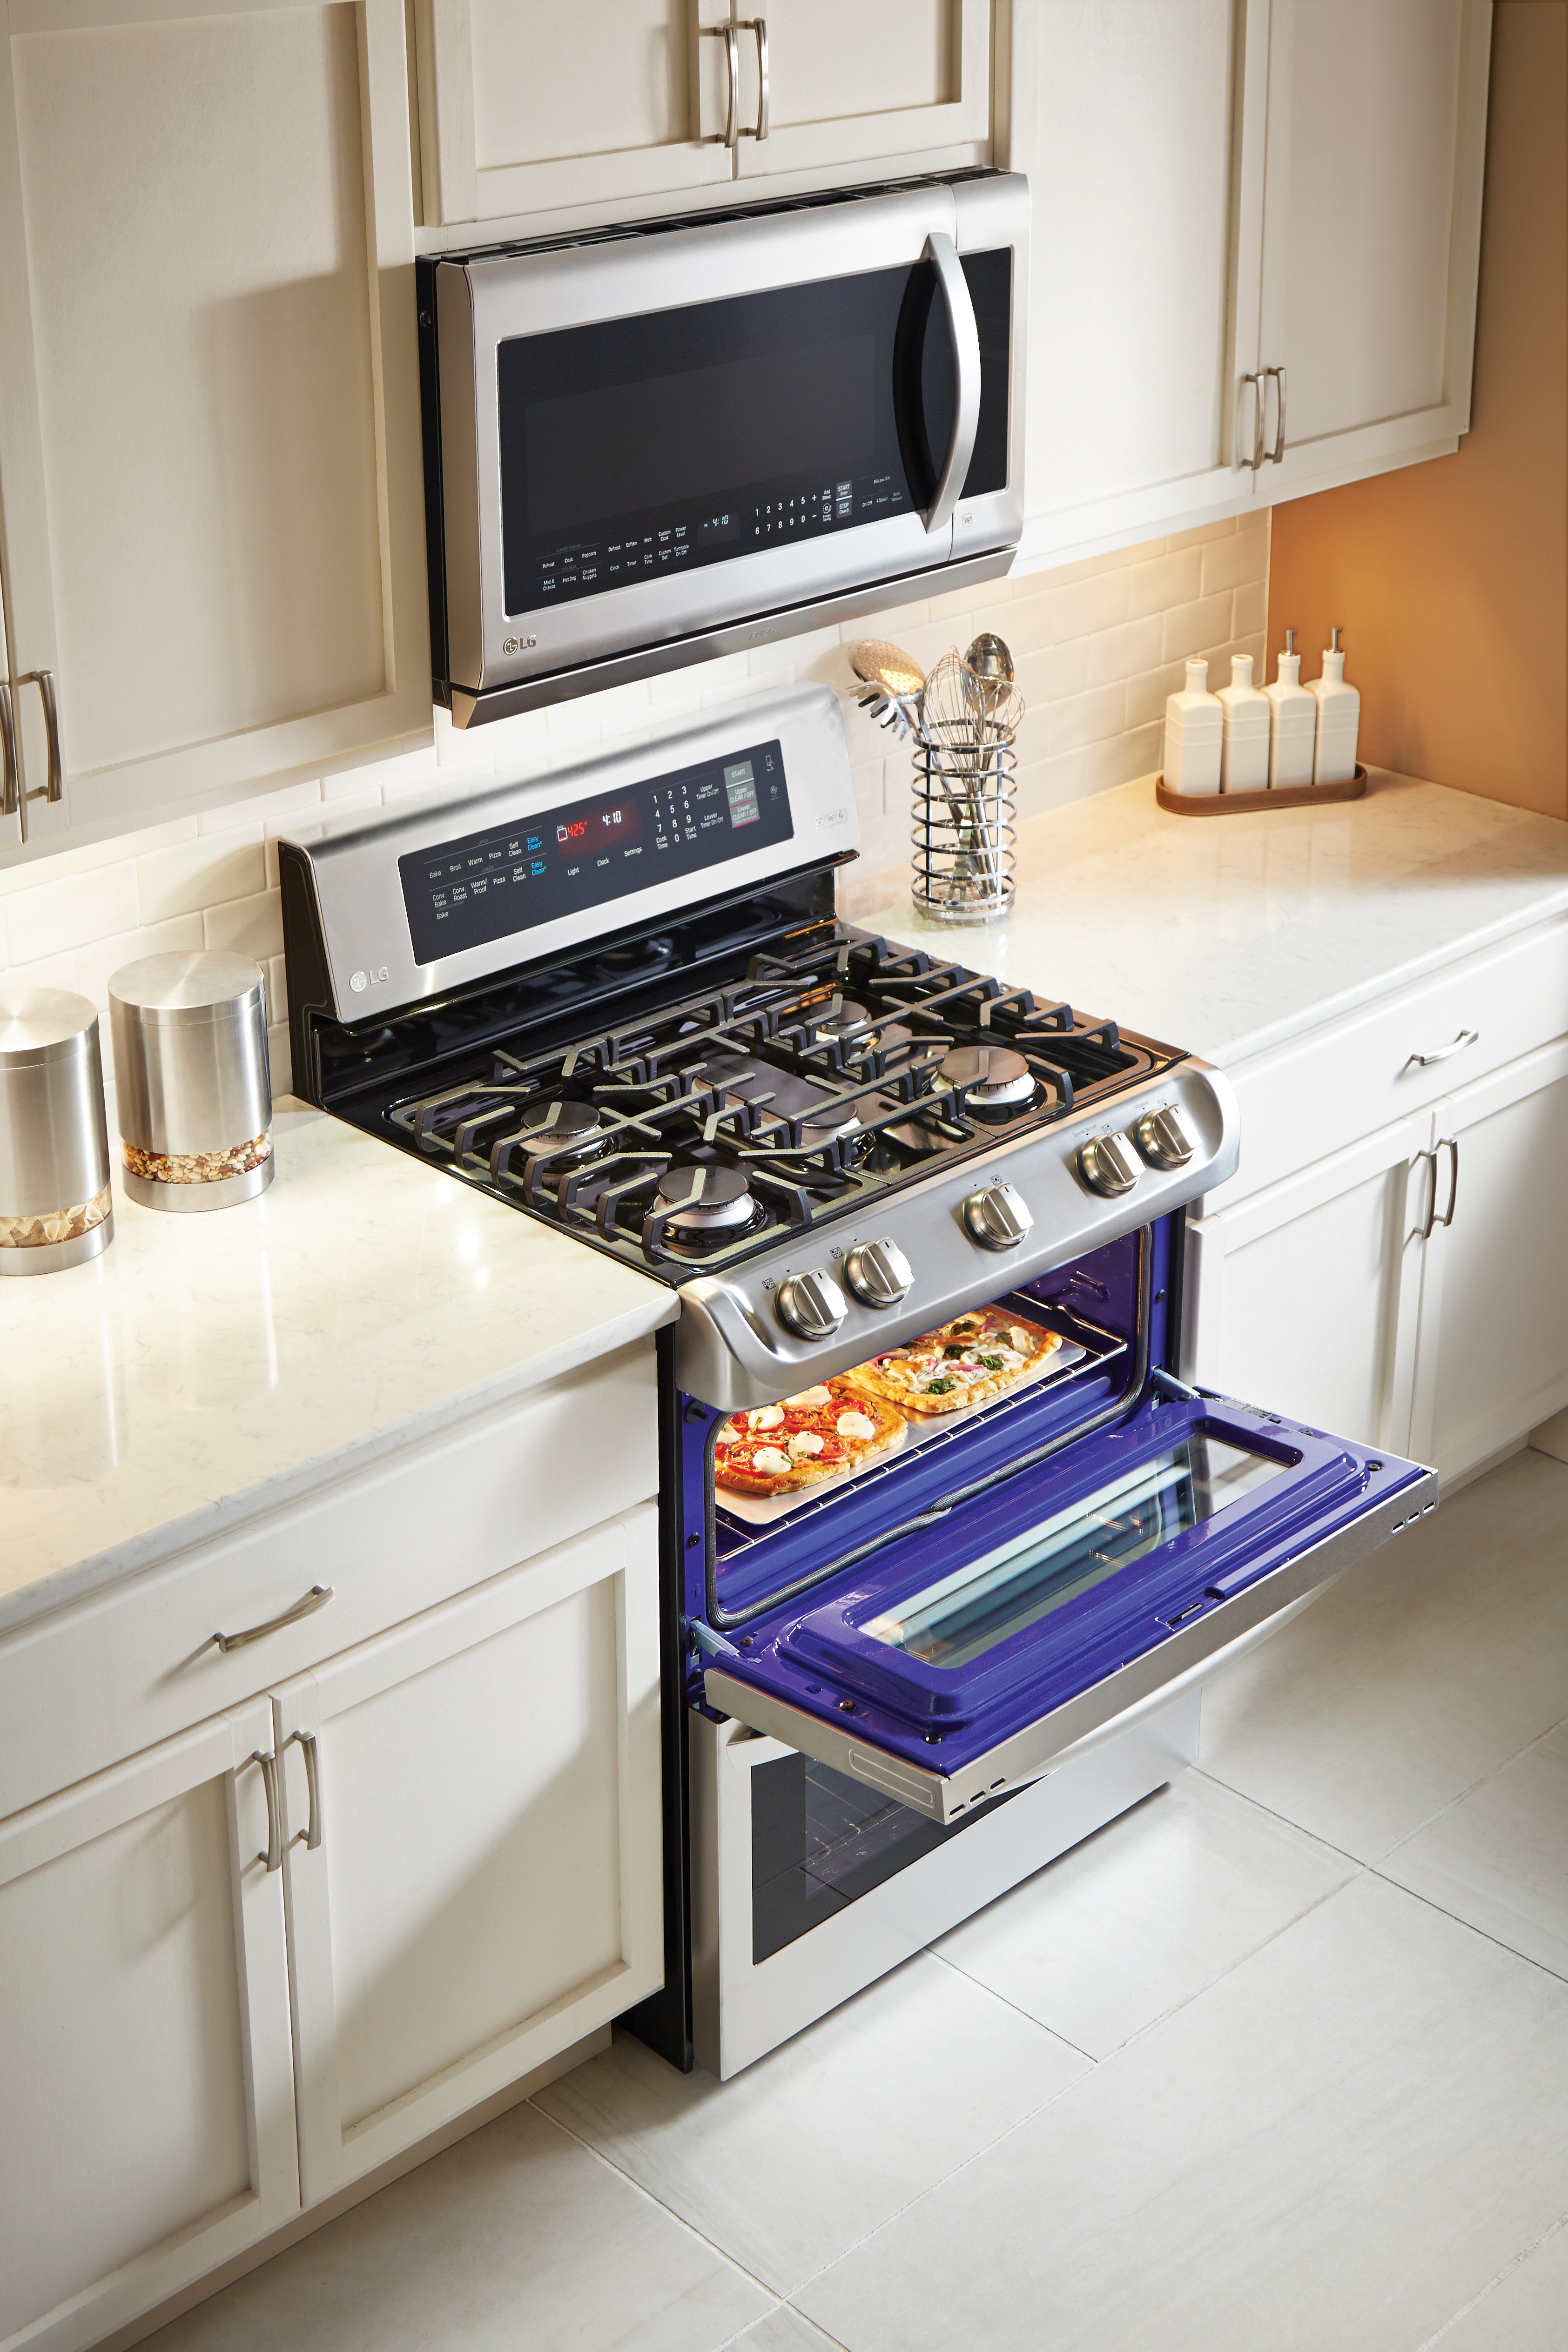 Step Up Your Baking Game With The LG ProBake Double Oven From BestBuy